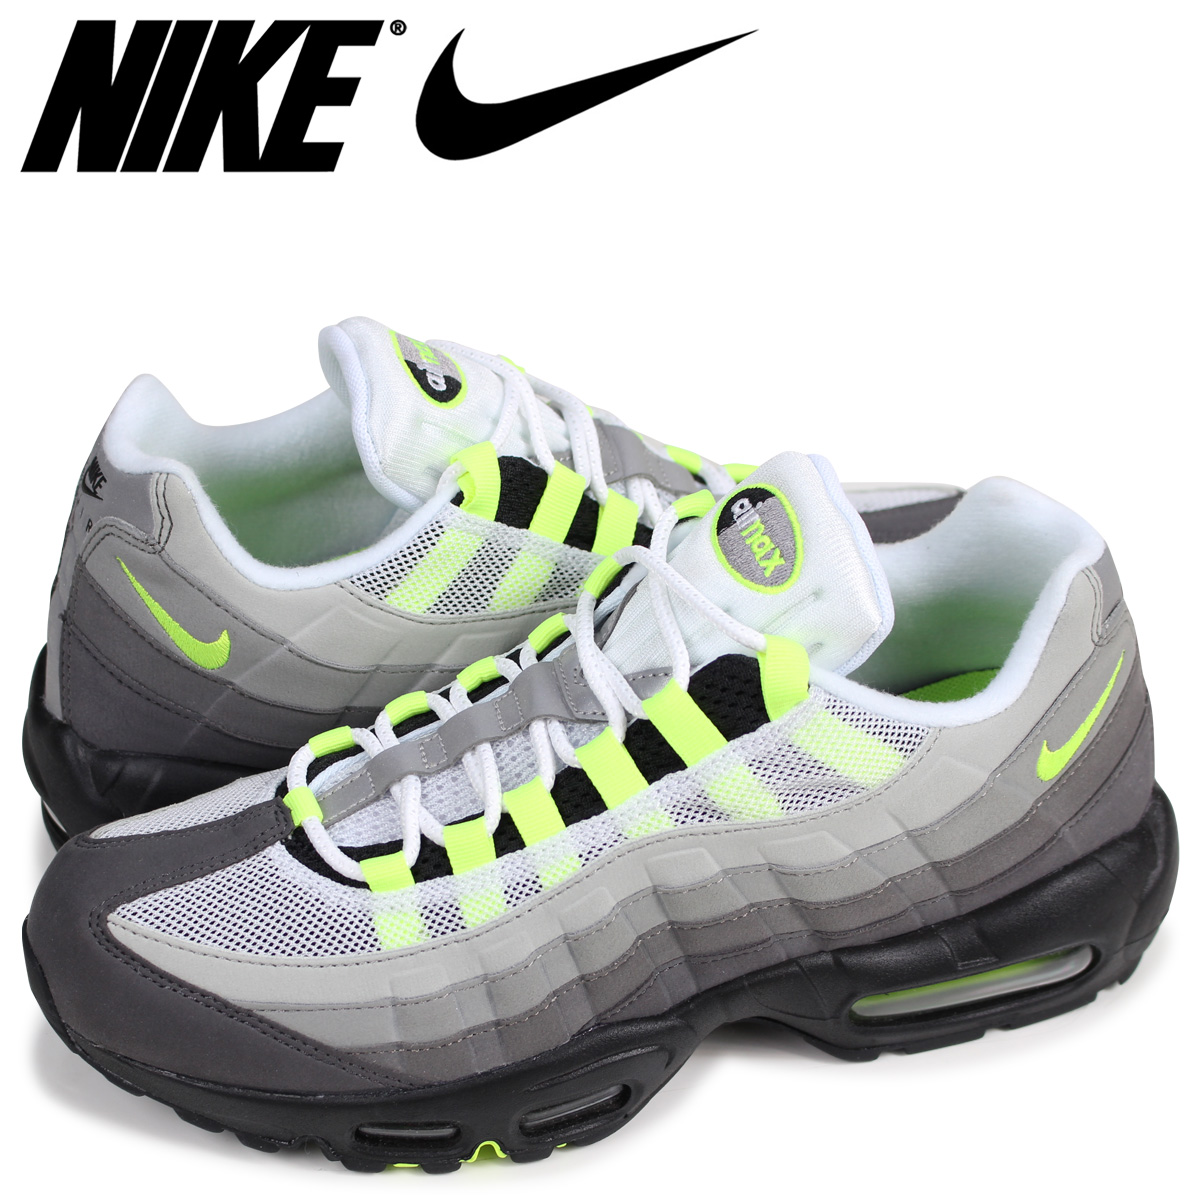 SneaK Online Shop | Rakuten Global Market: Nike NIKE Air Max 95 sneakers men AIR MAX 95 OG 554,970-071 neon yellow [going to be received reservation product about the beginning of March Shinnyu load]